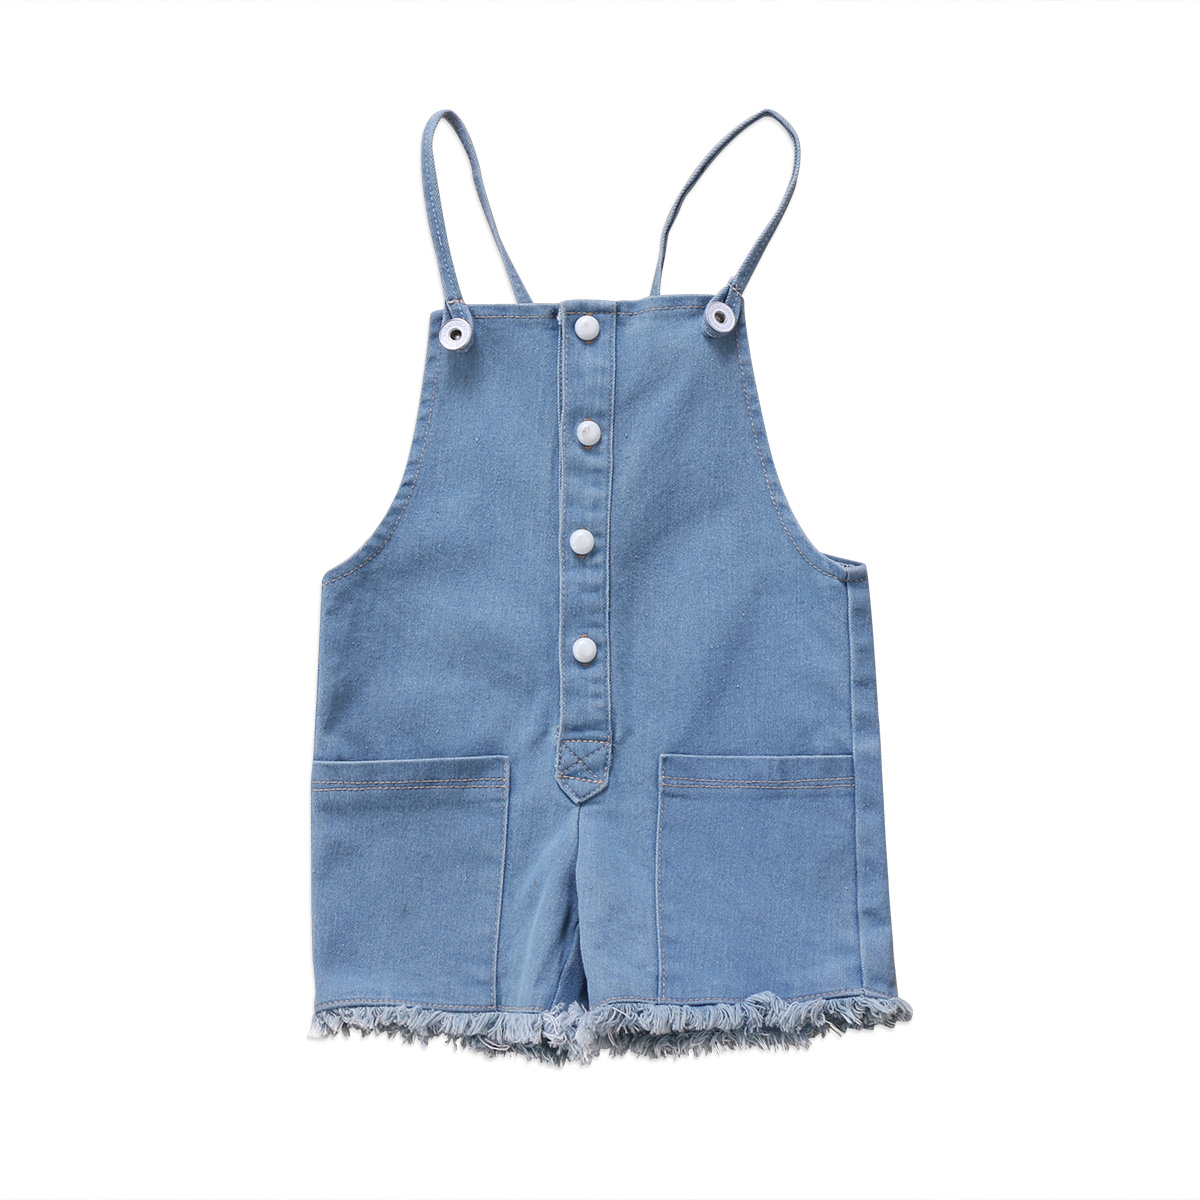 Baby girls' one-piece rompers from day to night Bring your newborn home in a soft, organic cotton baby girl's romper thats gentle on sensitive skin. Crawling and walking babies are free to explore wearing versatile footed rompers.